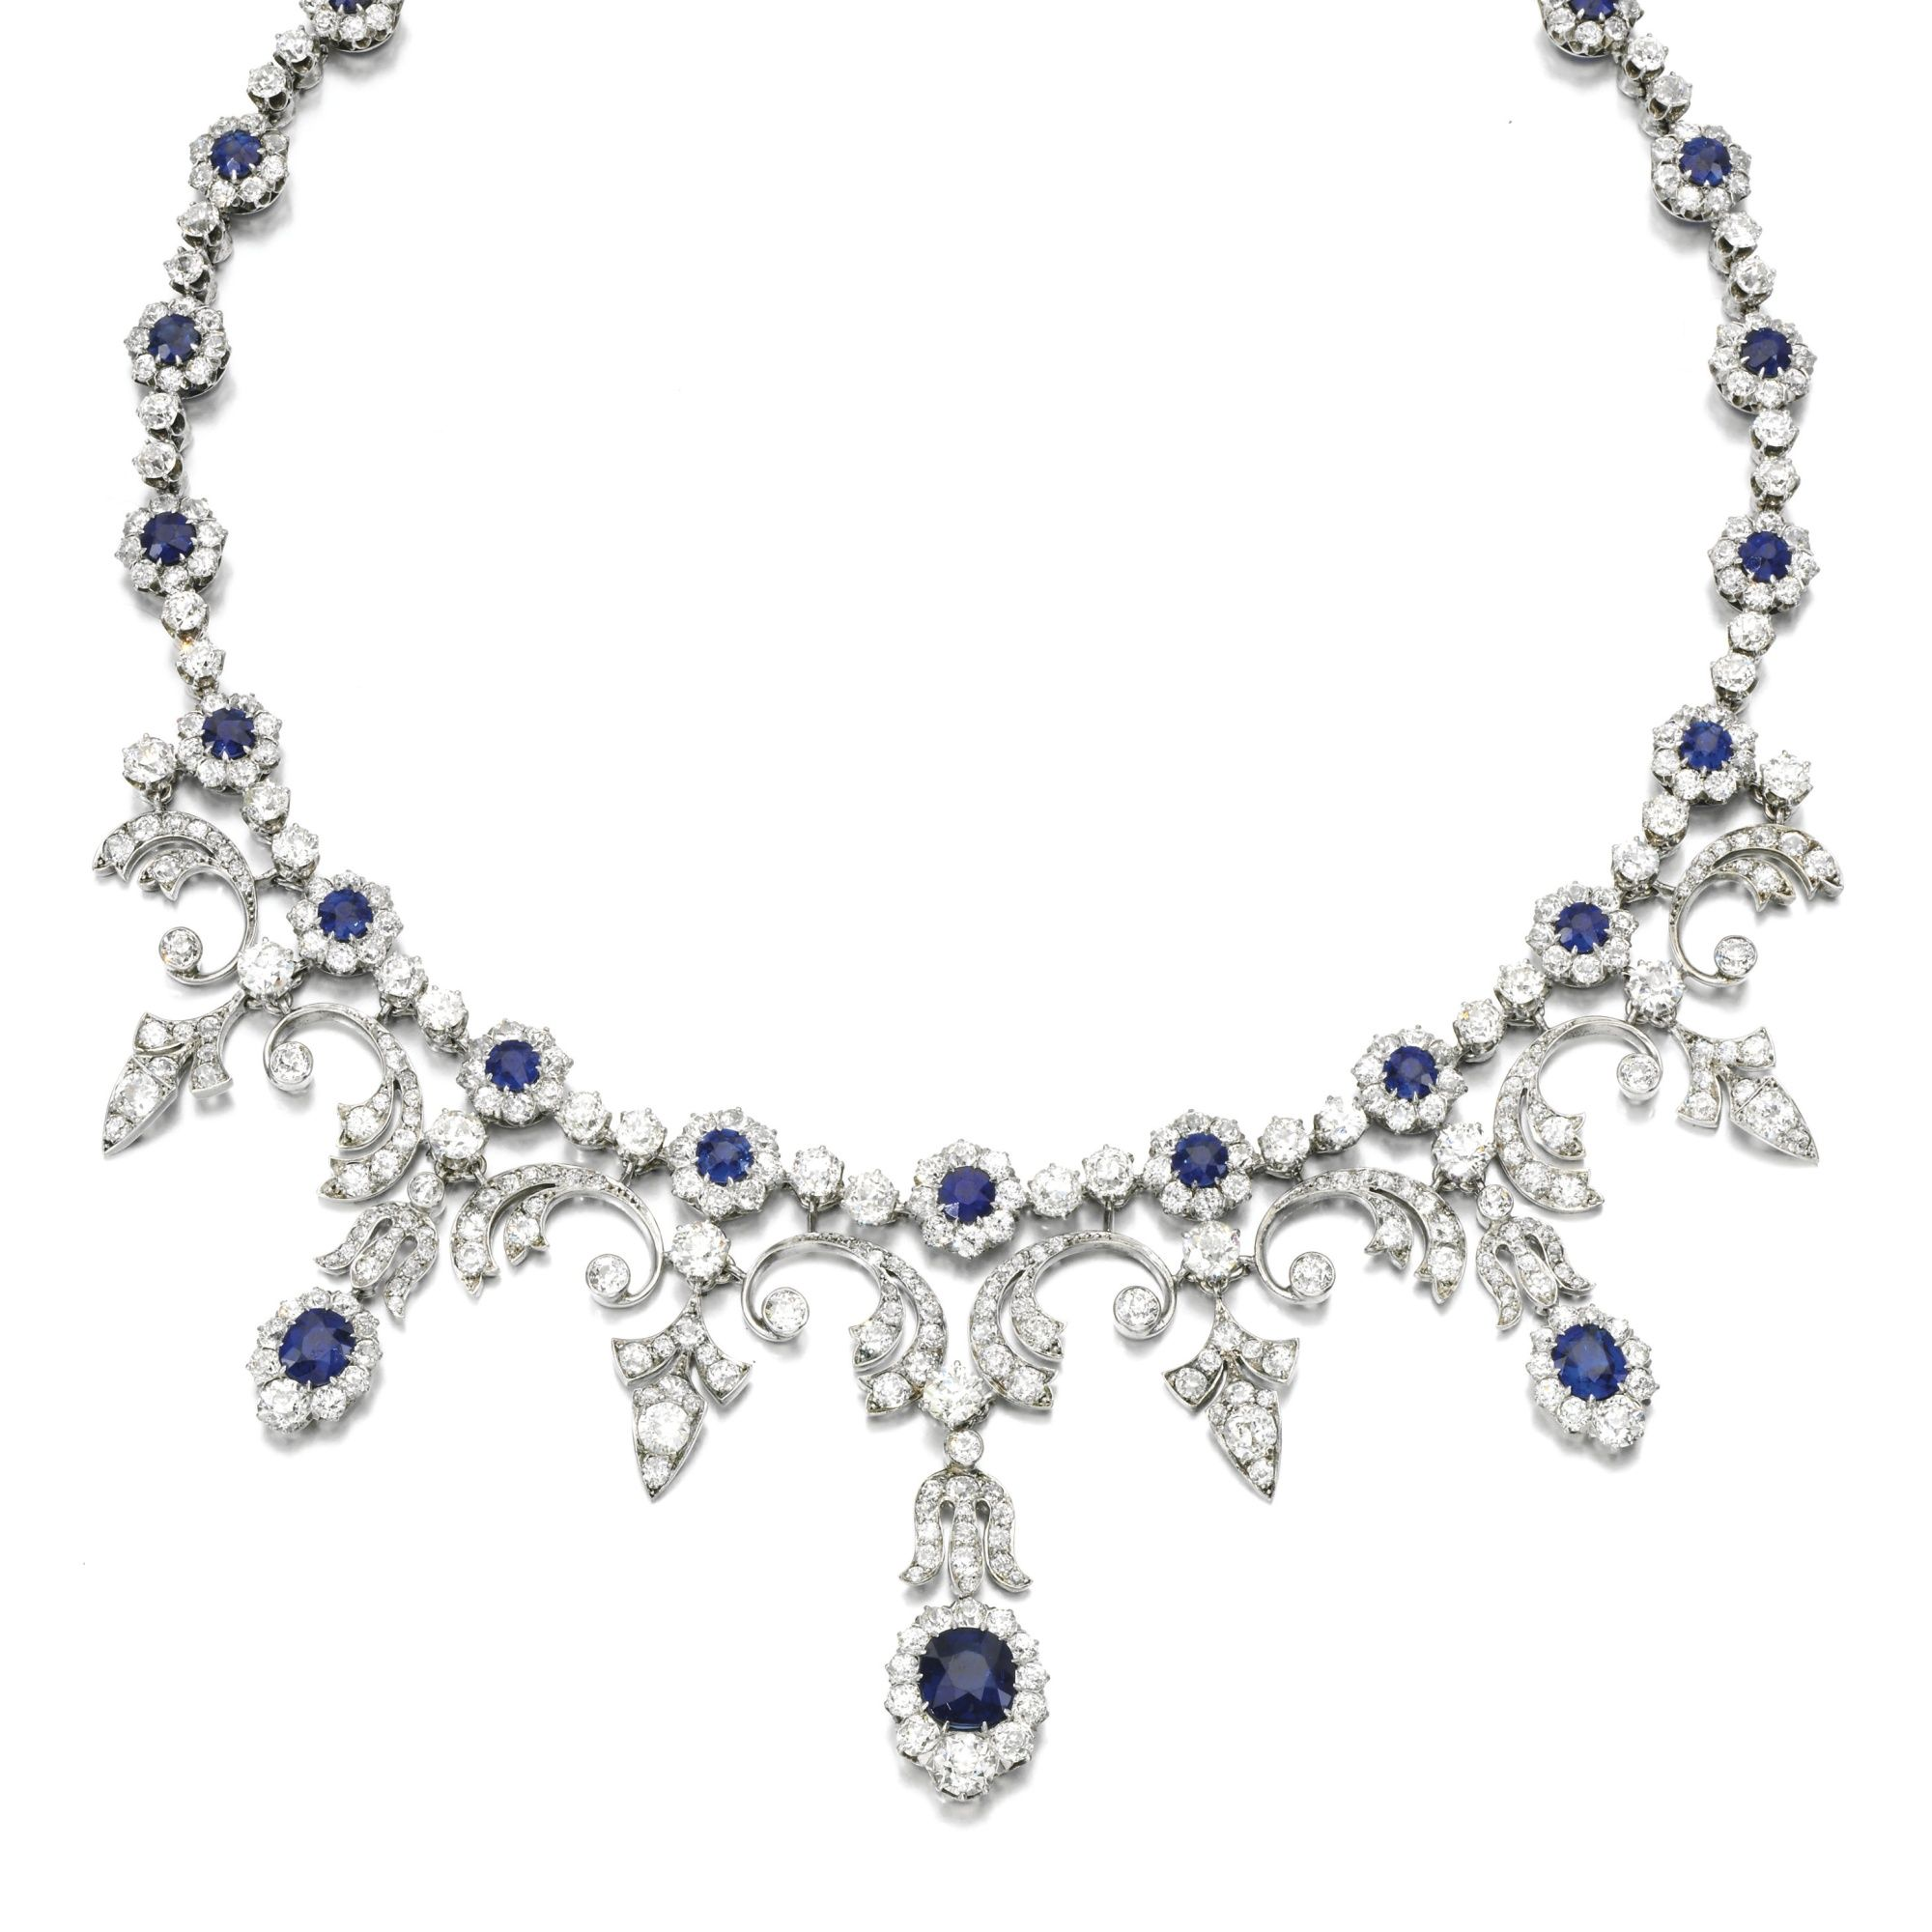 Sapphire and diamond necklace. Designed as a series of